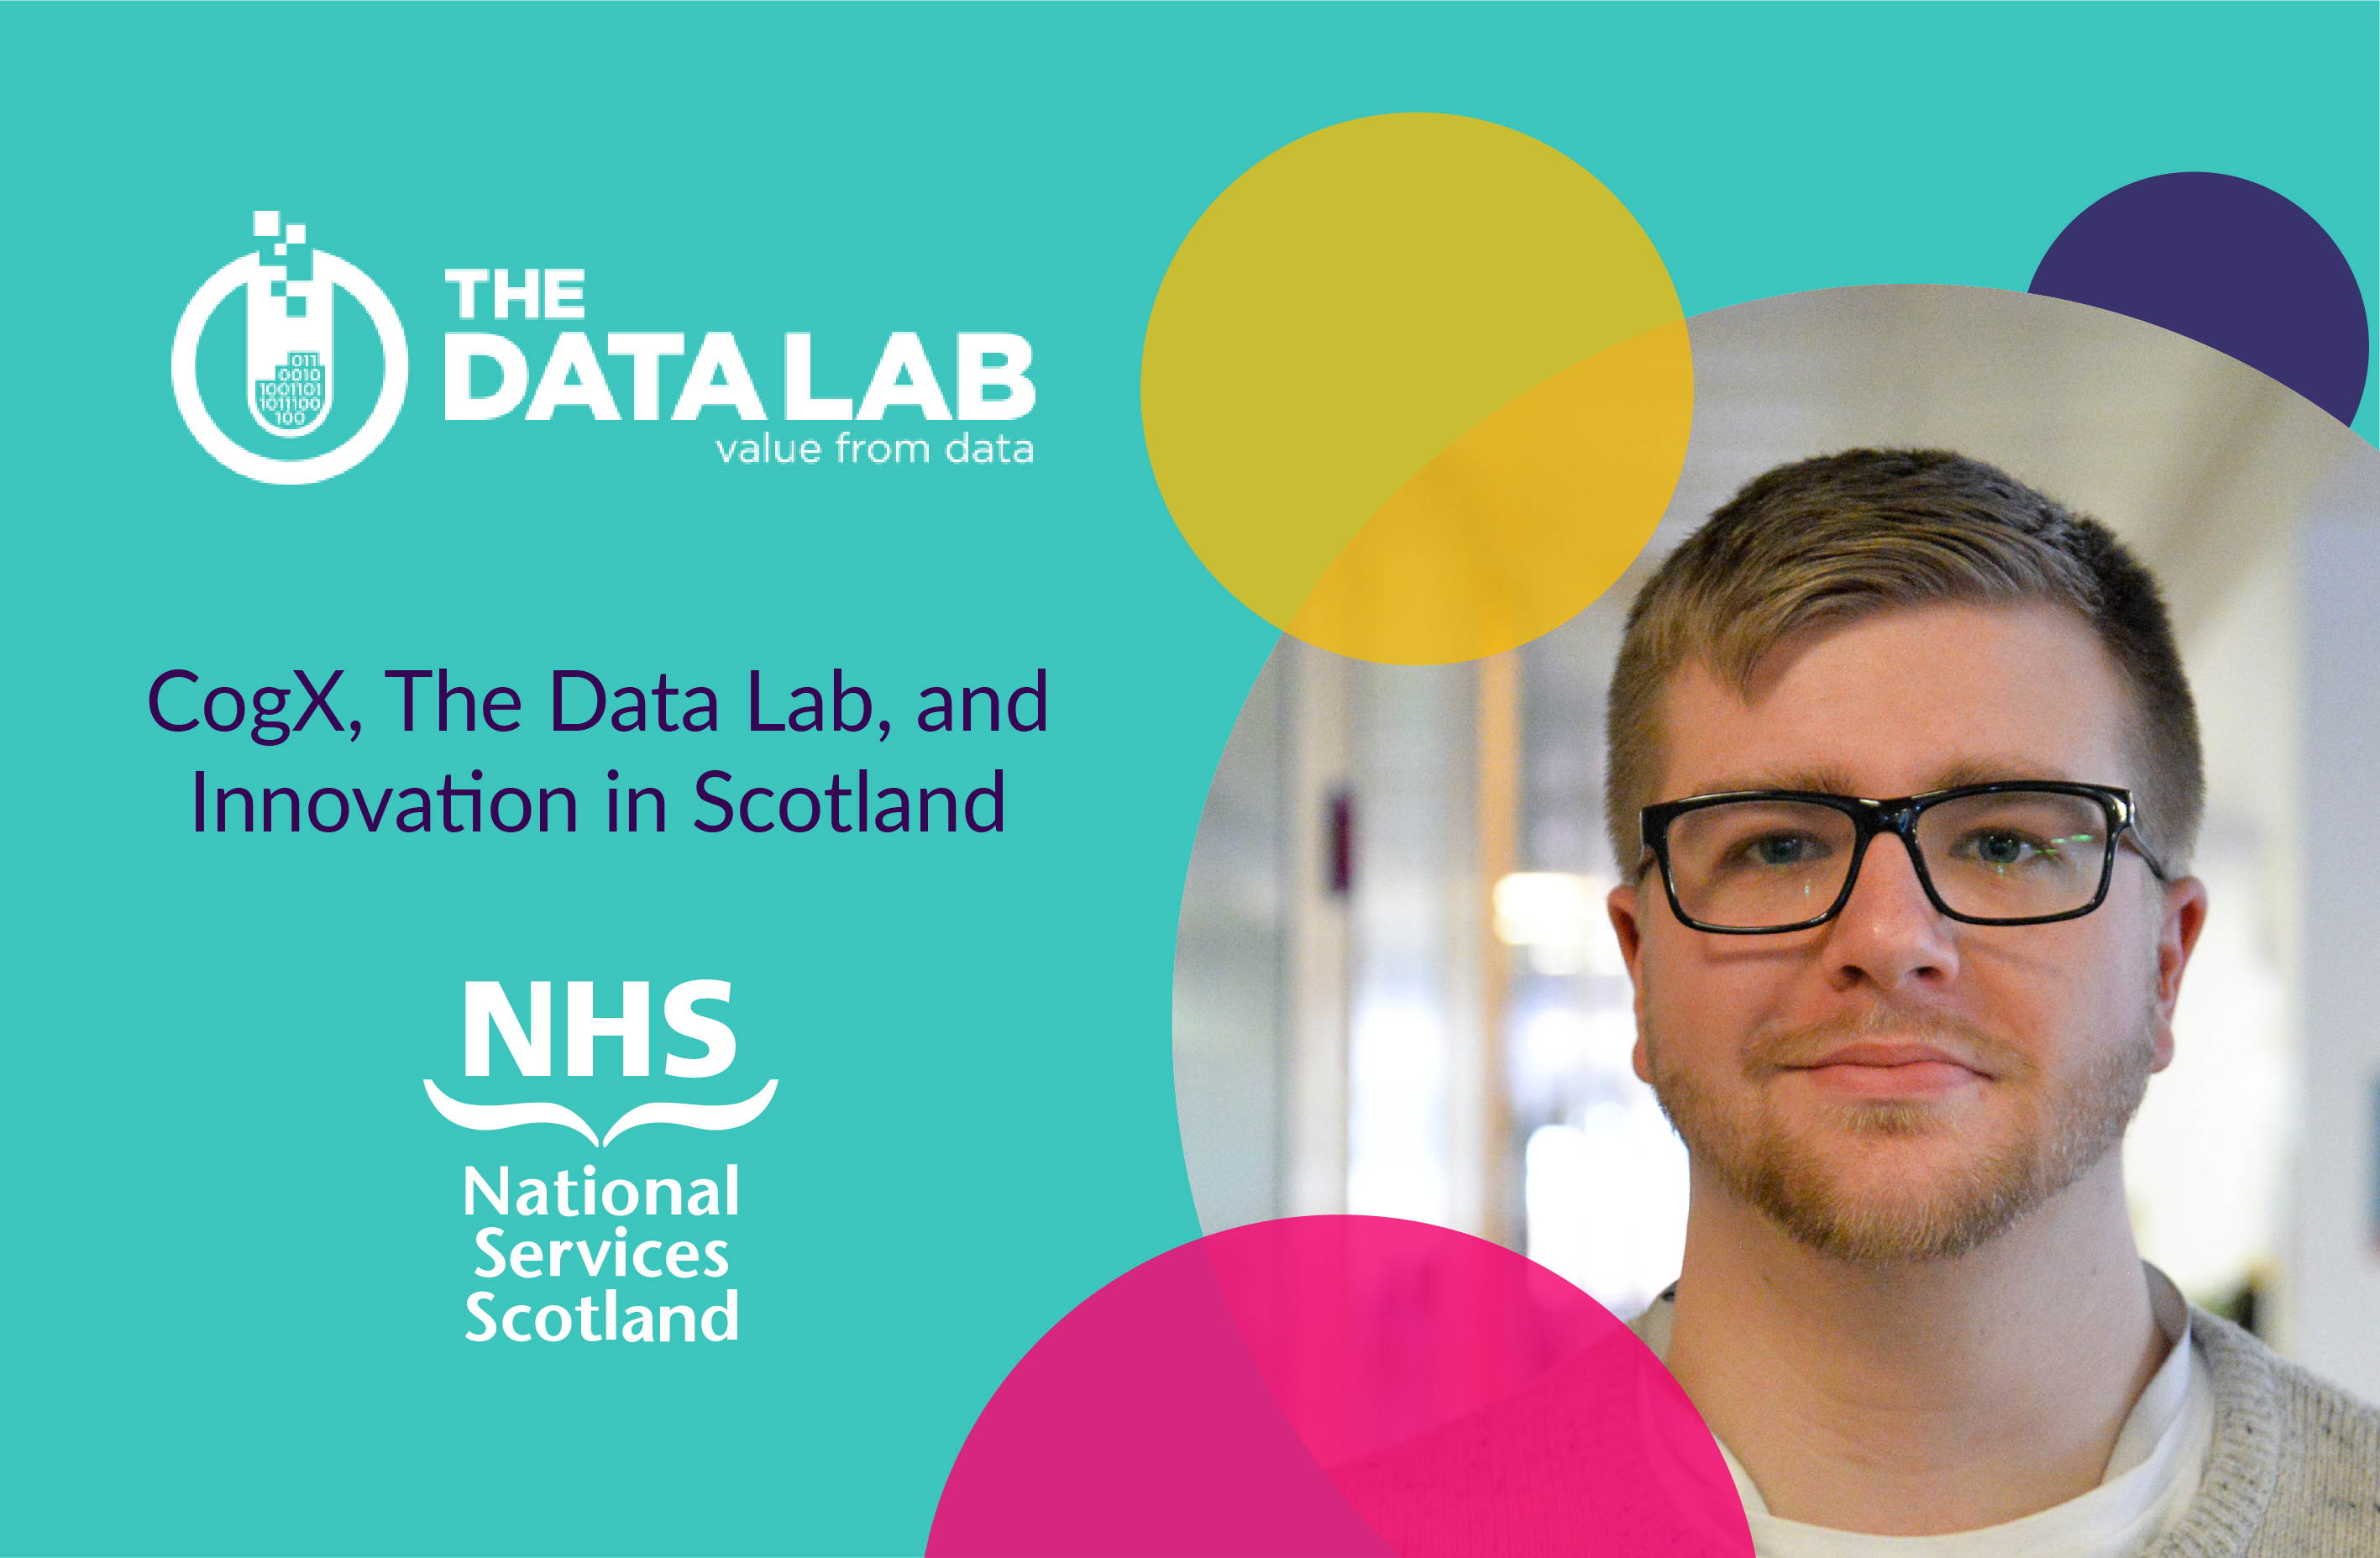 CogX, The Data Lab and Innovation in Scotland with NHS logo